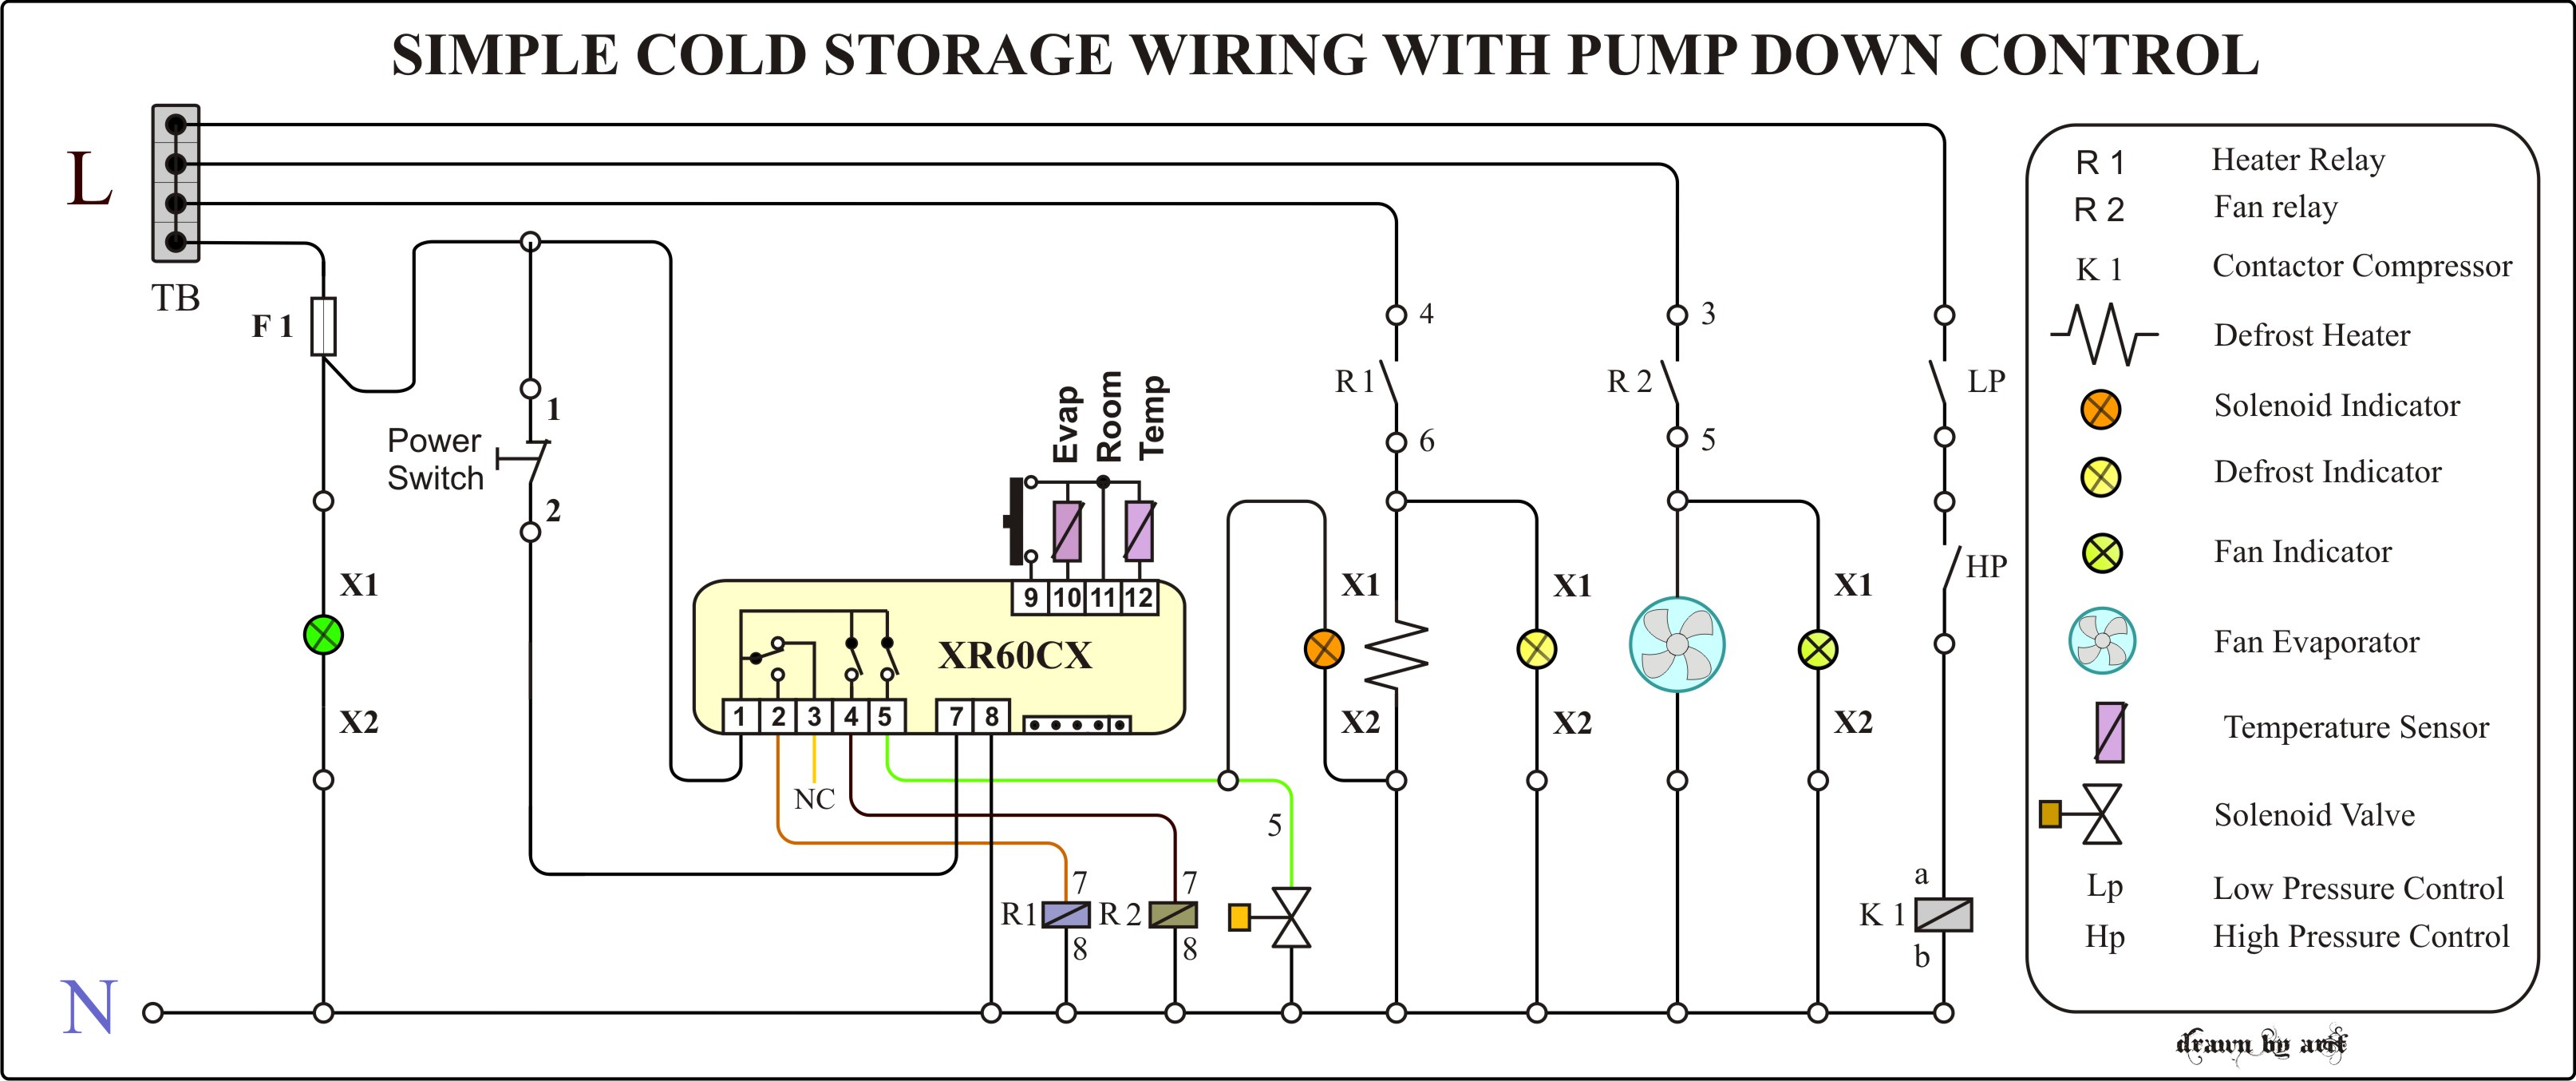 Wiring Diagram For Room   Wiring Diagram on programmable thermostat wiring diagram, bedroom electrical wiring diagram, generator connection diagram, recessed lighting wiring diagram, dual zone thermostat wiring diagram, electrical outlet wiring diagram, wiring closet diagram, furnace thermostat wiring diagram, generator panel wiring diagram, solar panel wiring diagram, inverter generator diagram, 5 wire thermostat wiring diagram, 4 wire thermostat wiring diagram, 2wire thermostat wiring diagram, wiring 2 lights in one room, wiring boat diagram, kitchen wiring diagram, wiring room circuit, 8 wire thermostat wiring diagram, wiring house diagram,